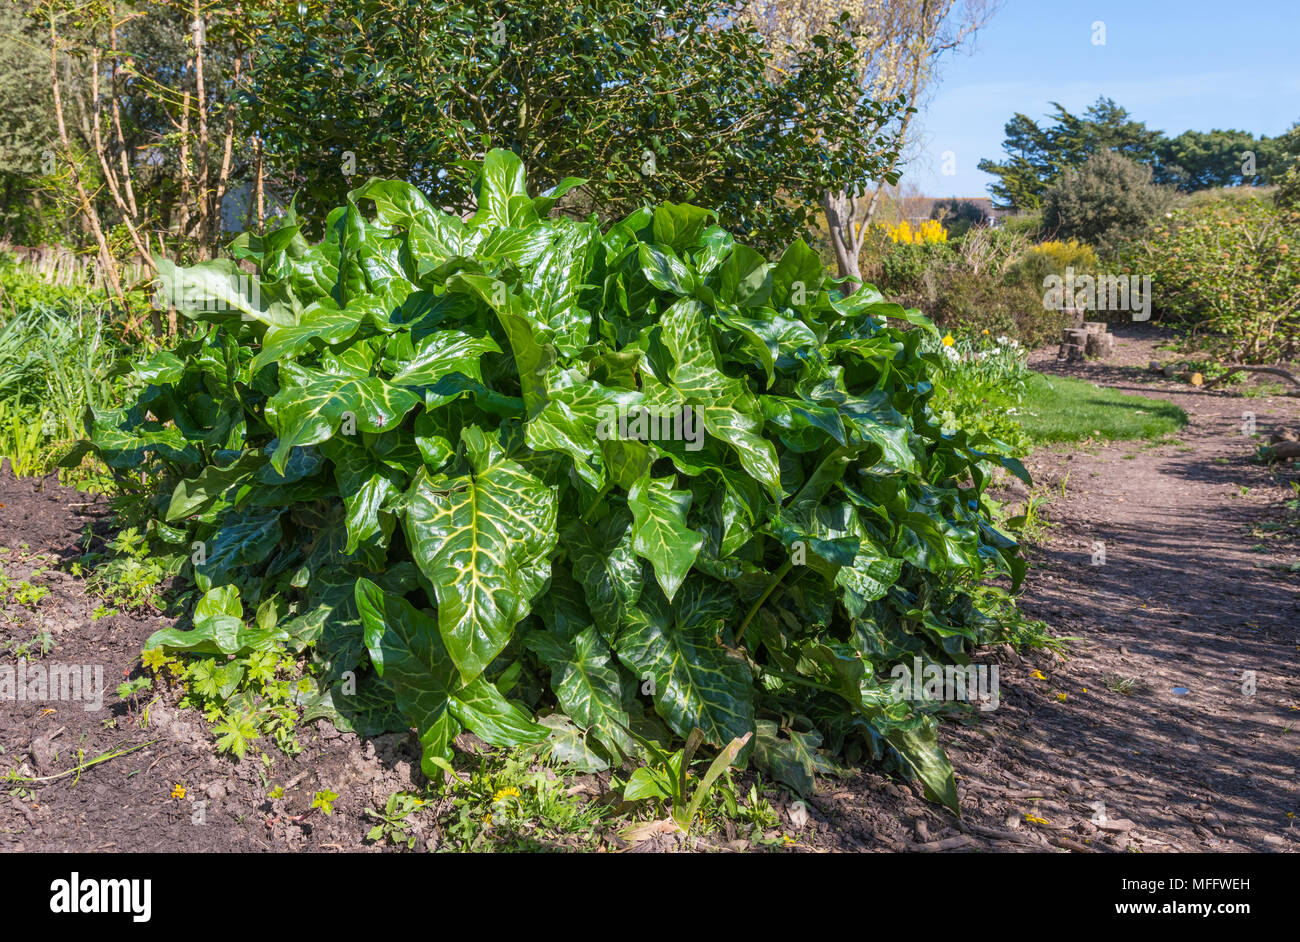 Bright green leaves with vivid yellow streaks on the Italian Lords and Ladies (Arum italicum) plant, growing in Spring in West Sussex, England, UK. - Stock Image